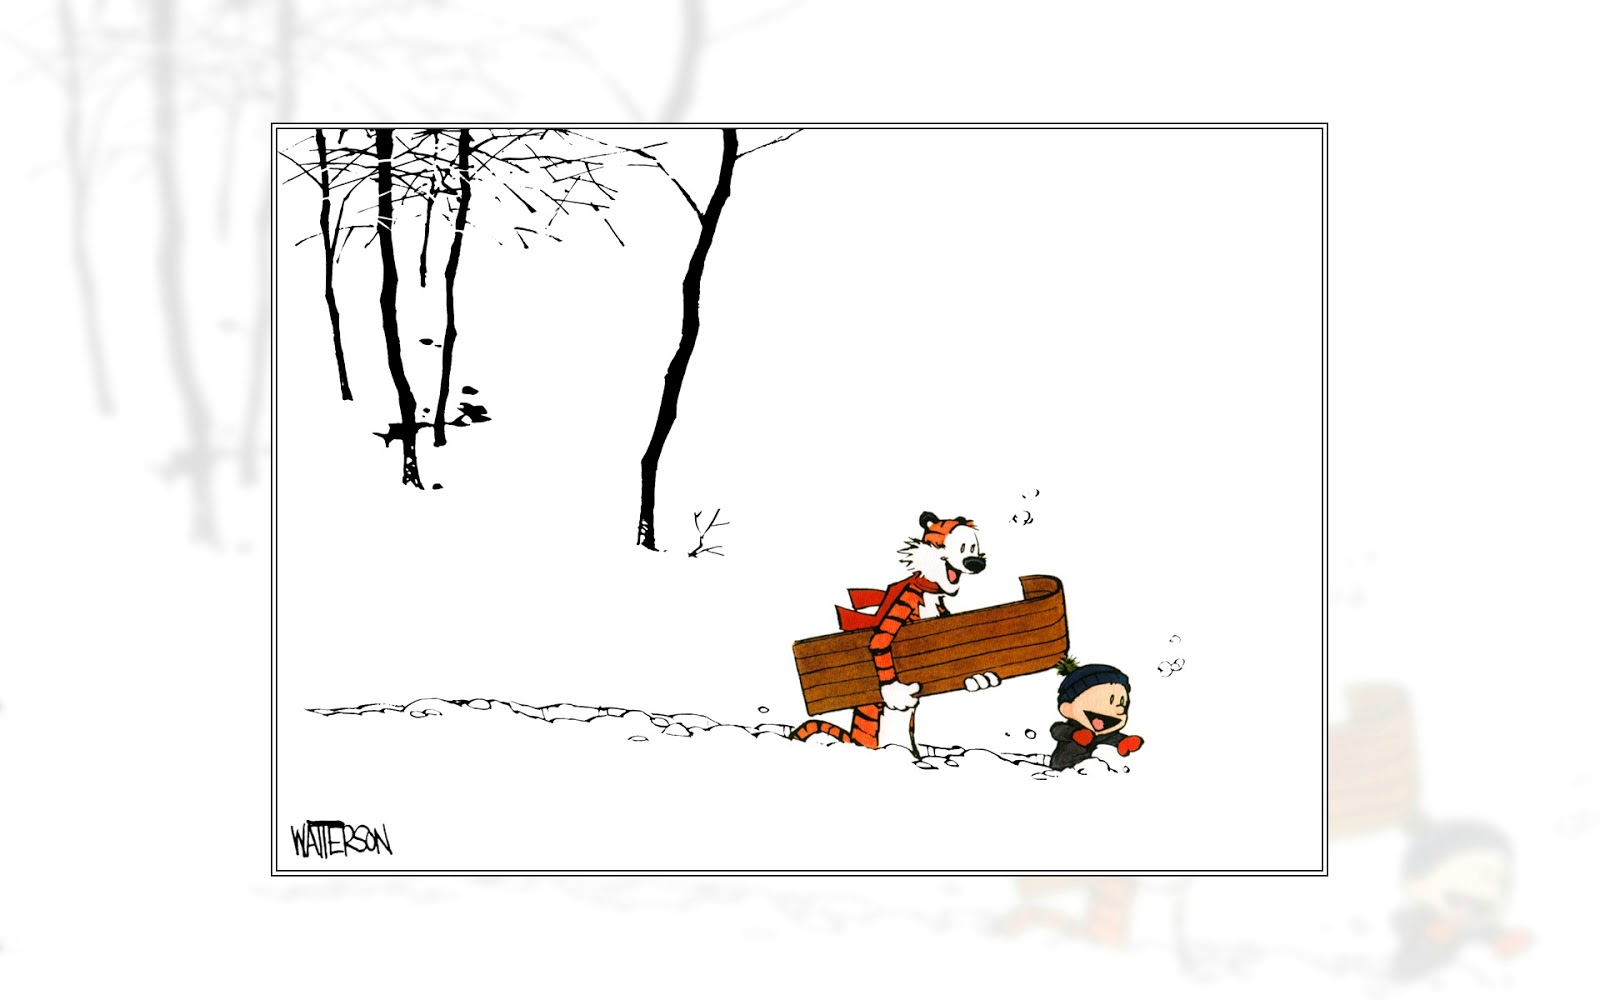 50 4k Calvin And Hobbes Wallpapers Hd For Desktop 2019